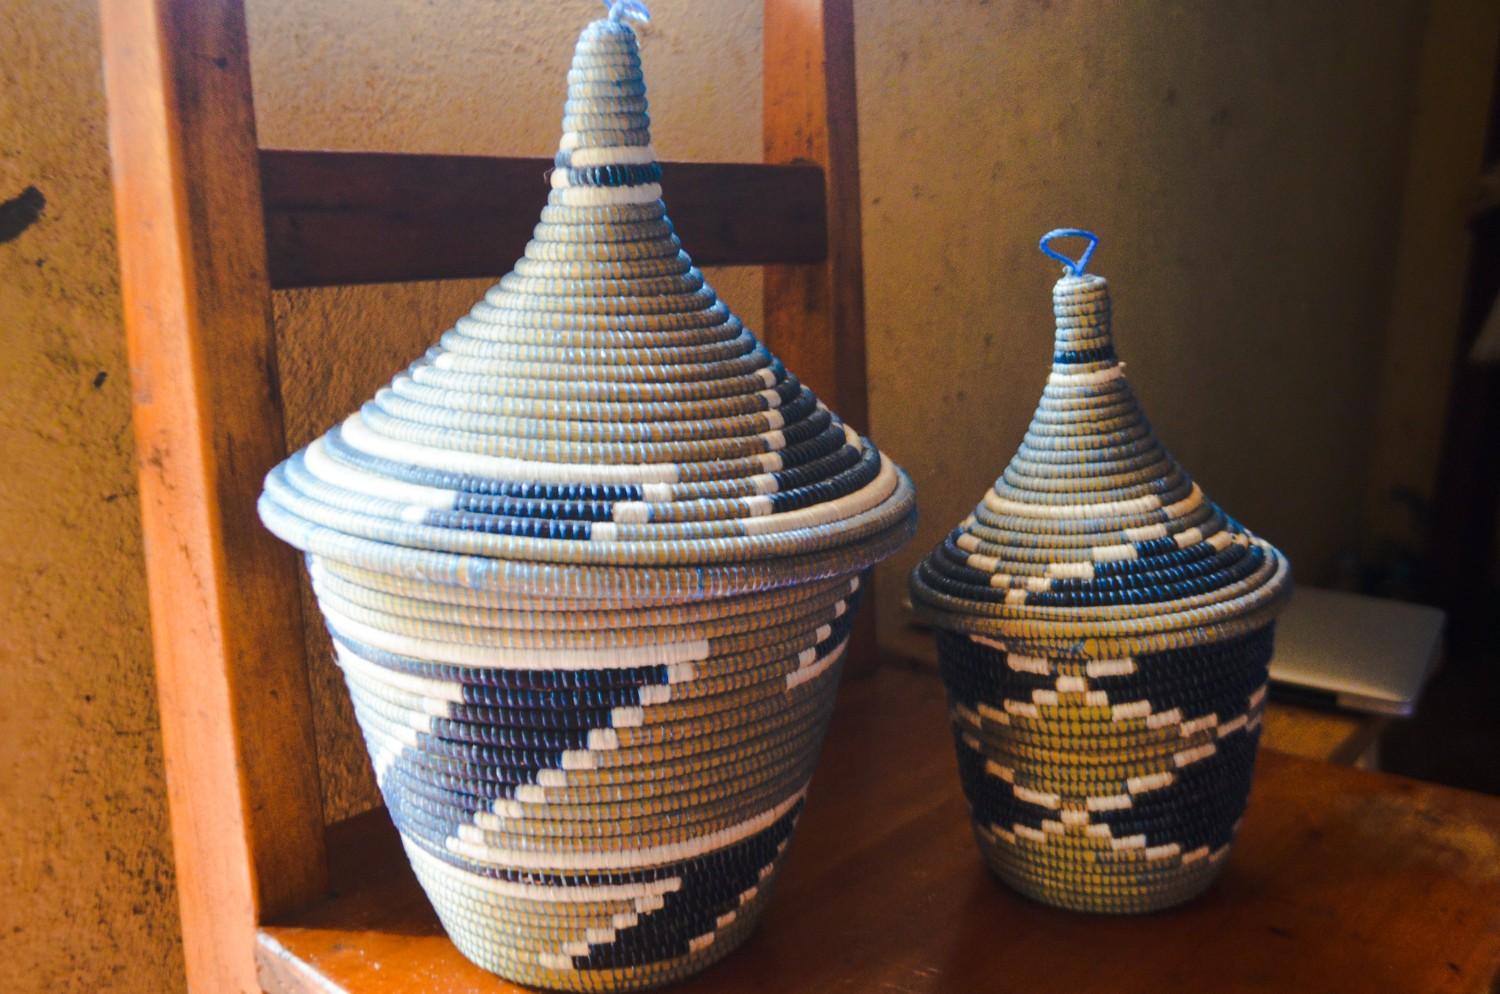 Traditional Rwanda peace basket - woven in various colors with a pyramid top